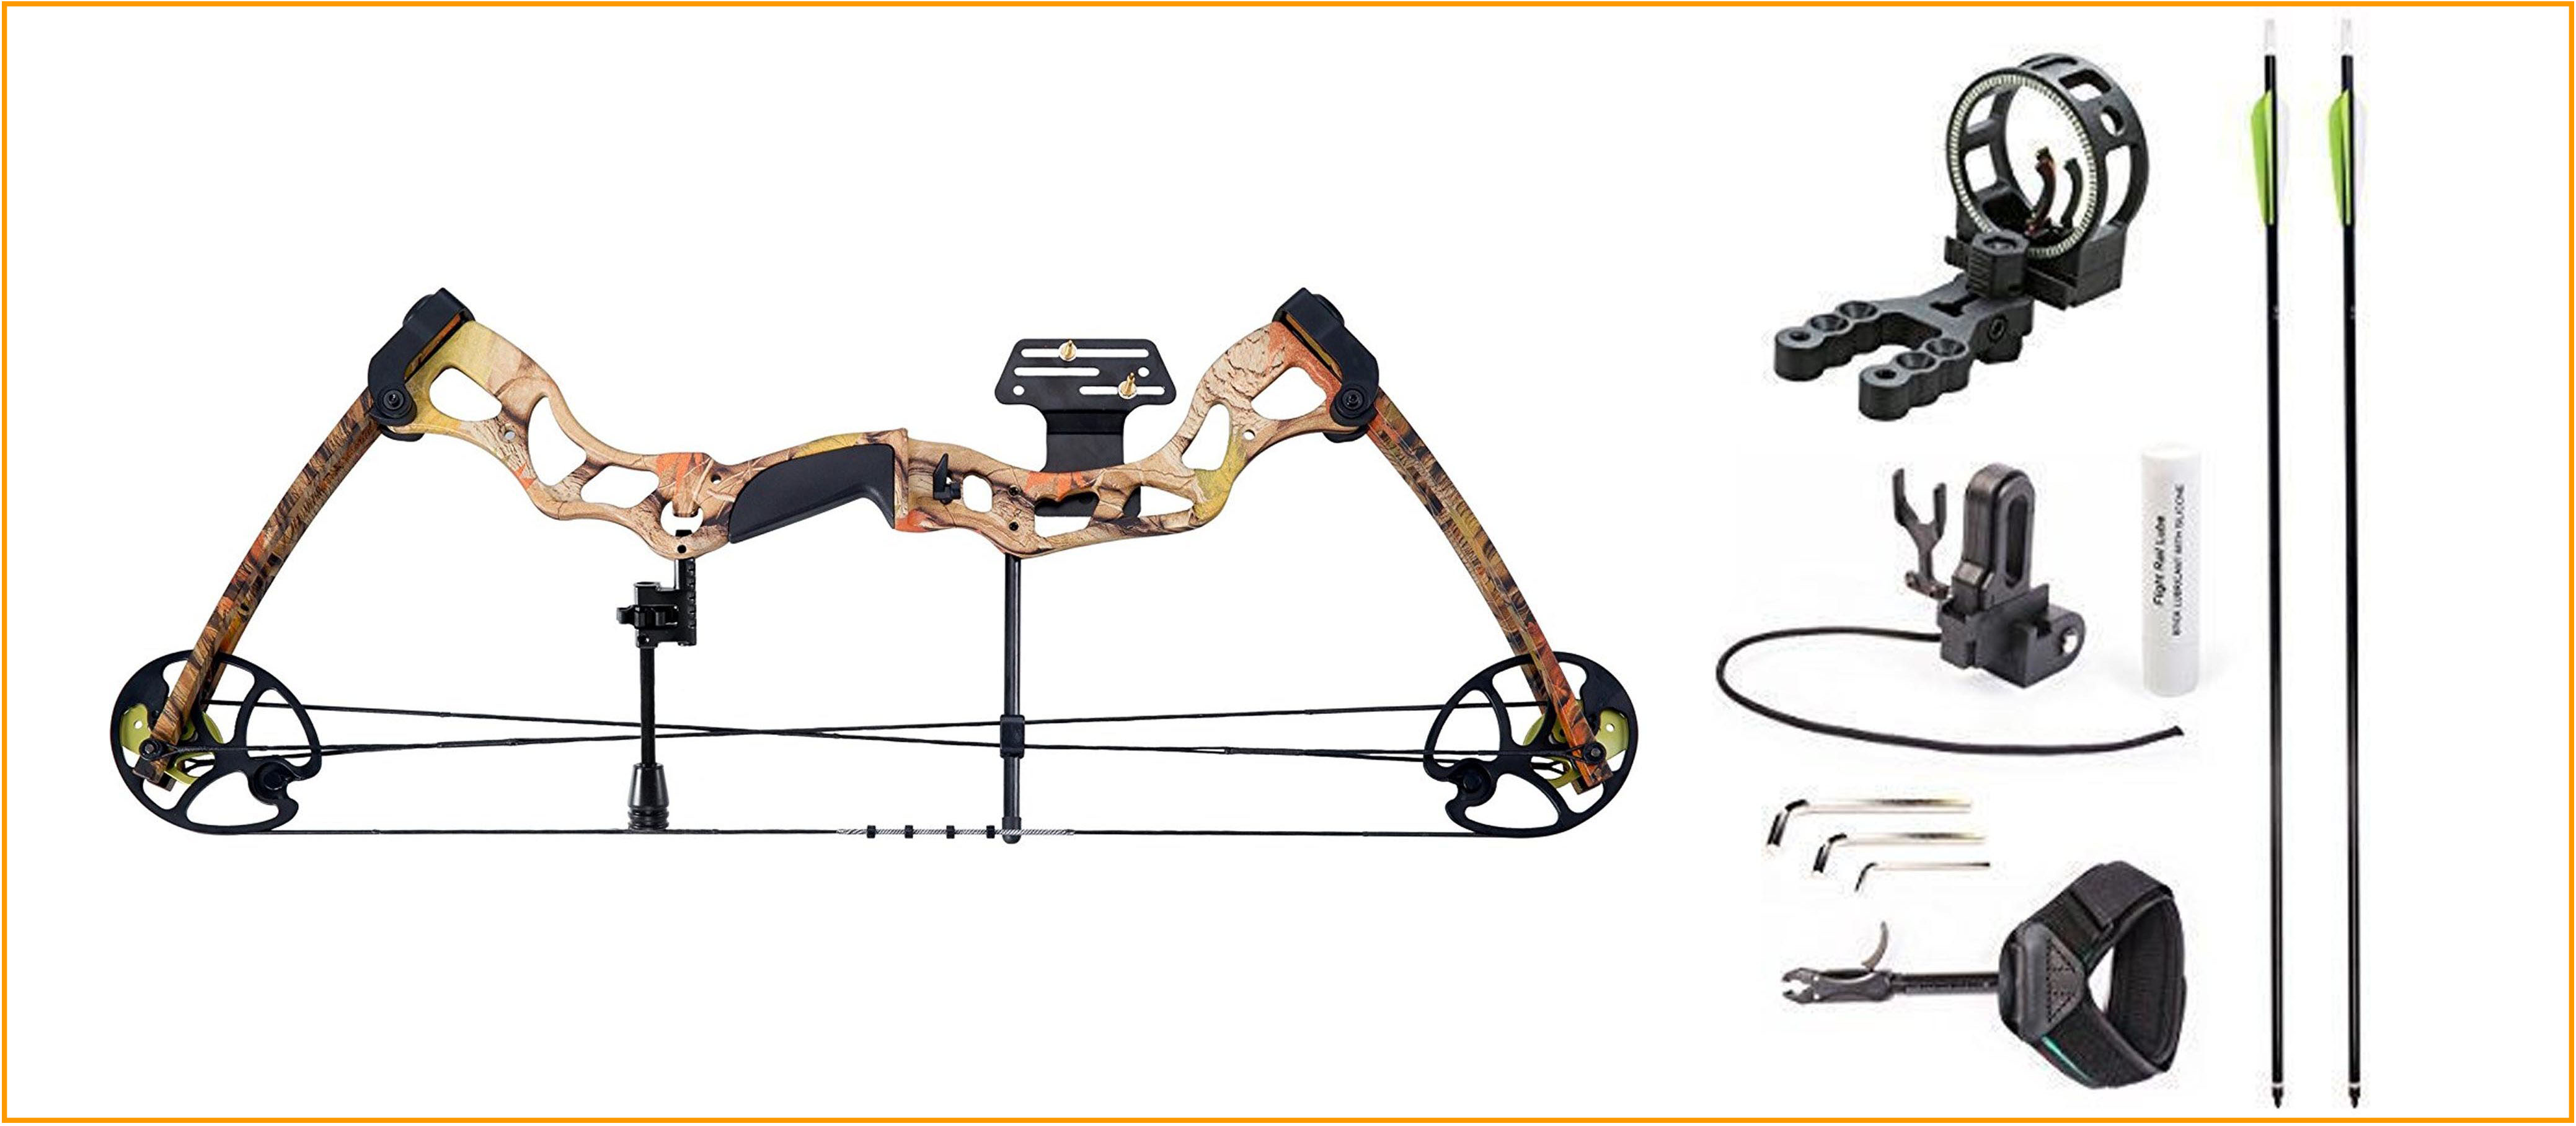 Leader-Accessories-Compound-Bow-e1525203466583